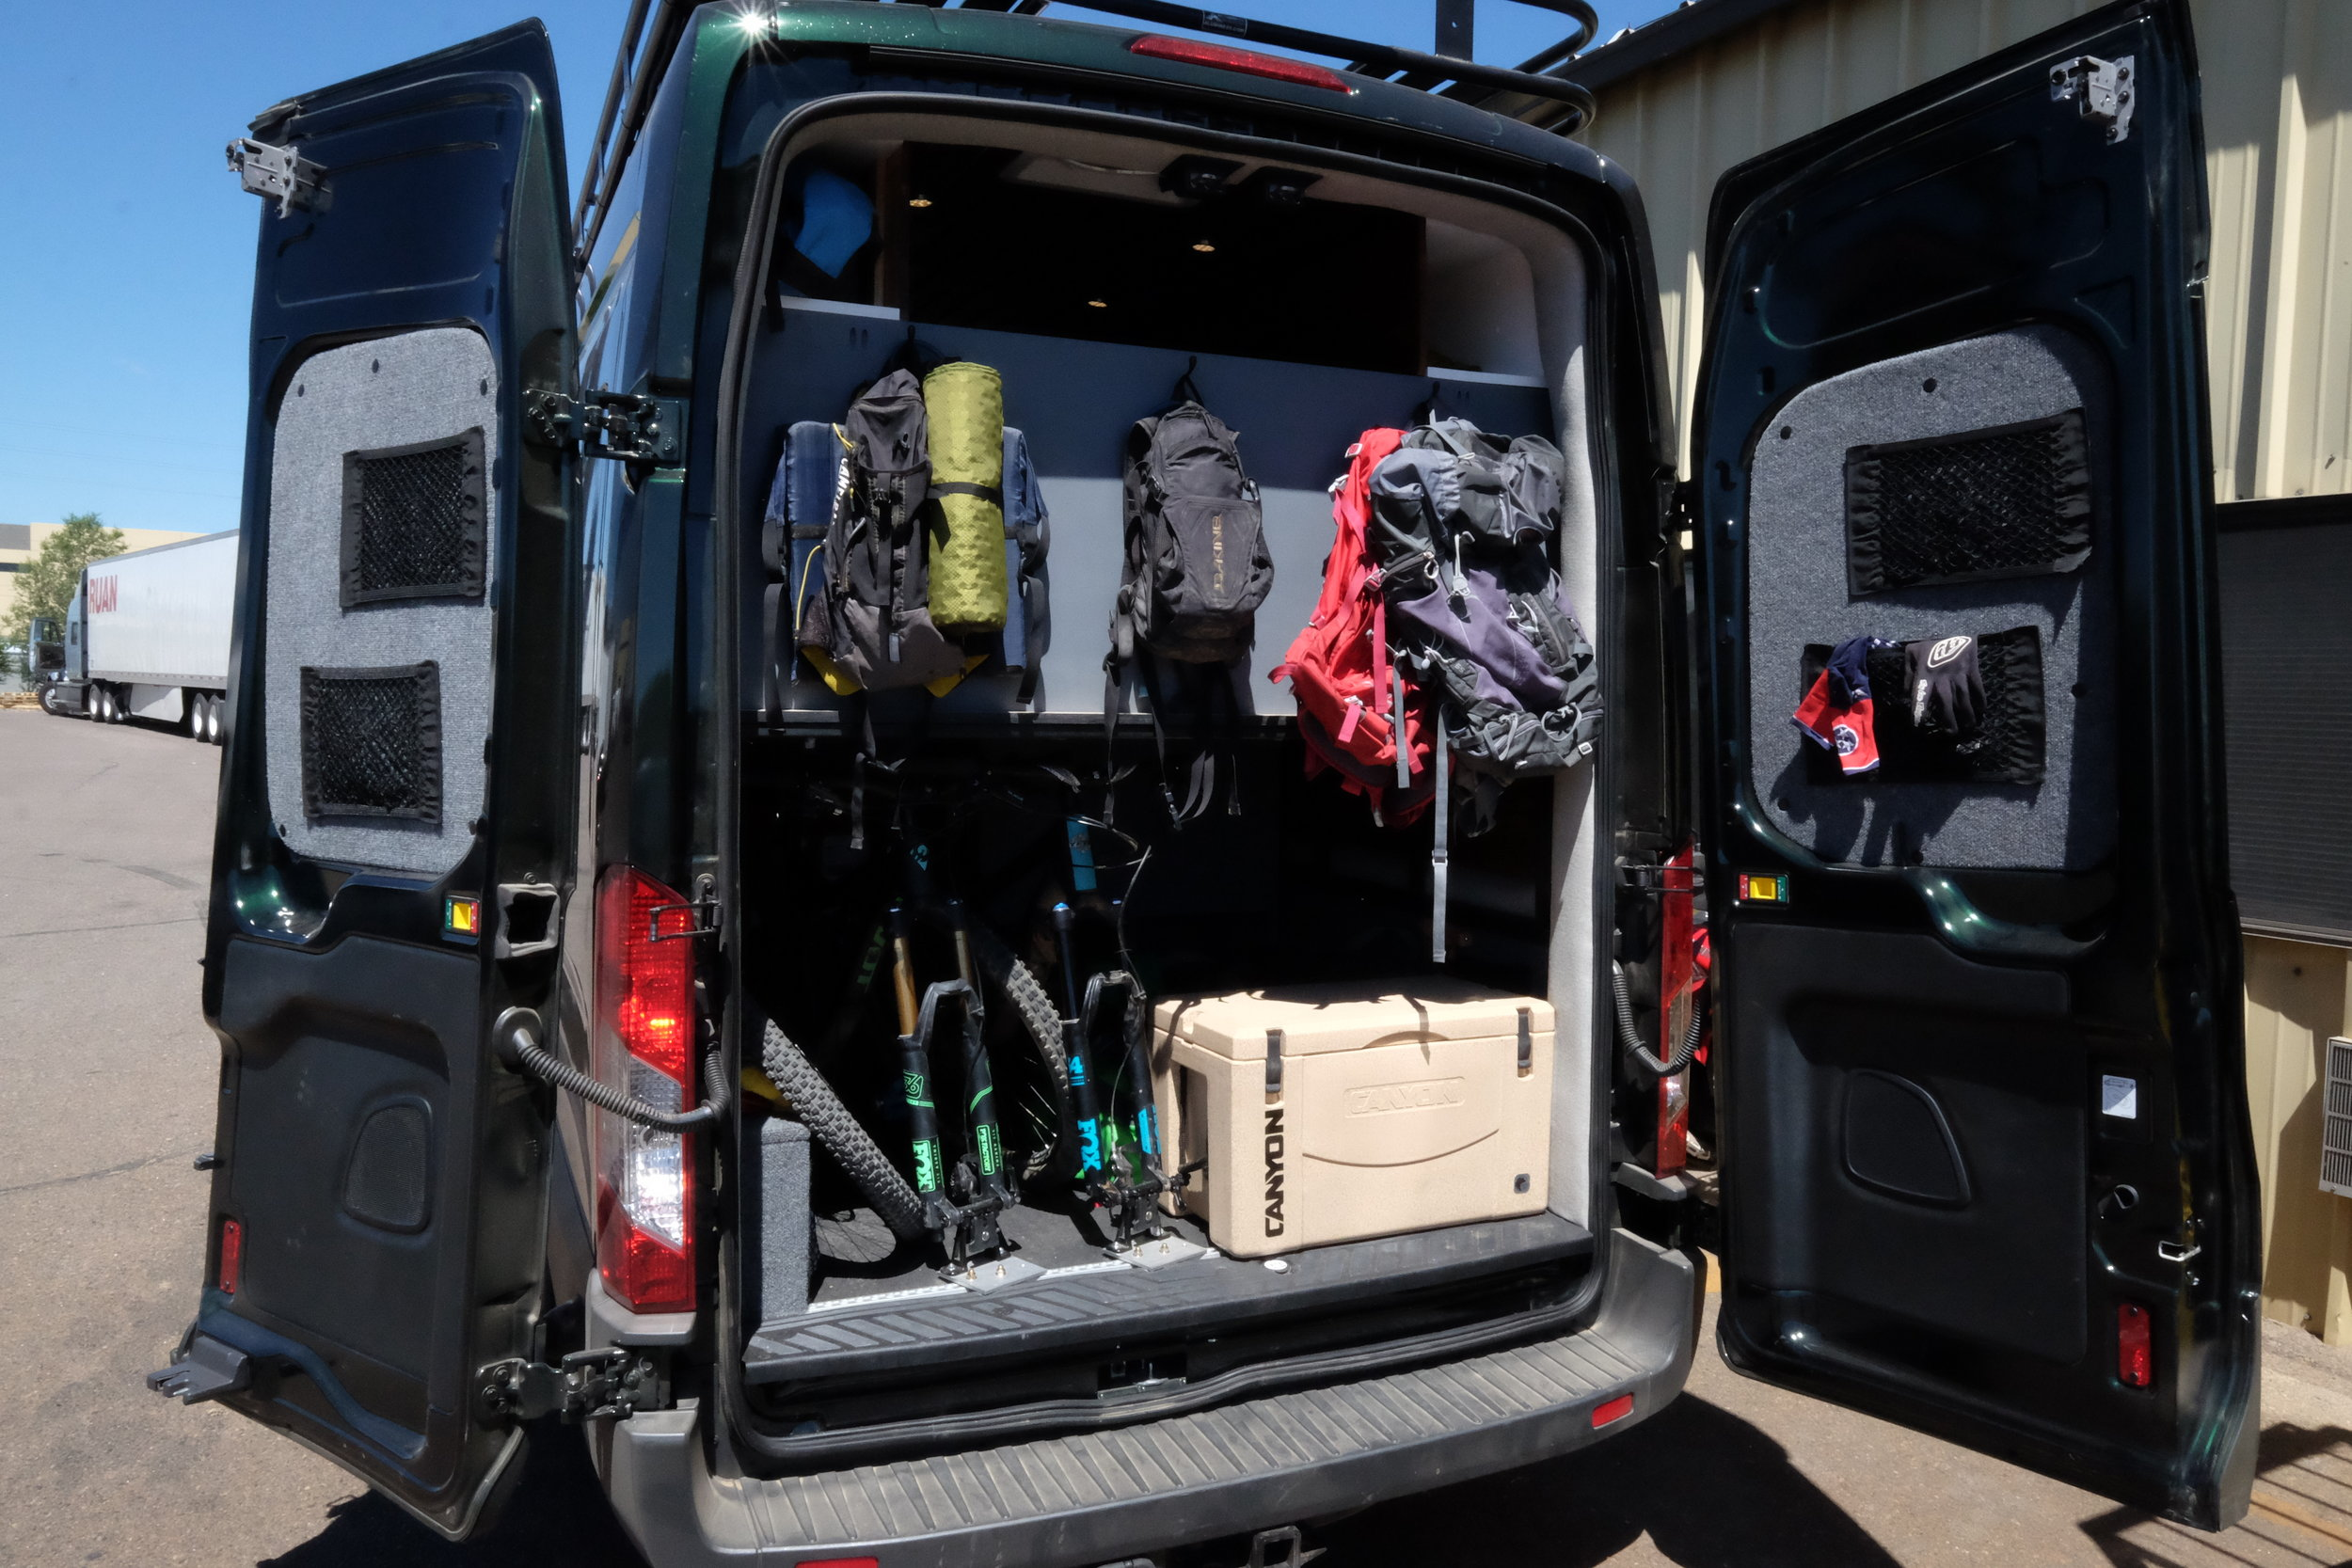 Not only does Dan's Transit look great, it functions well too. Here you can see the L-track mounted Rocky Mount bike mounts under the bed, not to mention room for coolers, outdoor gear, skis, and so much more.